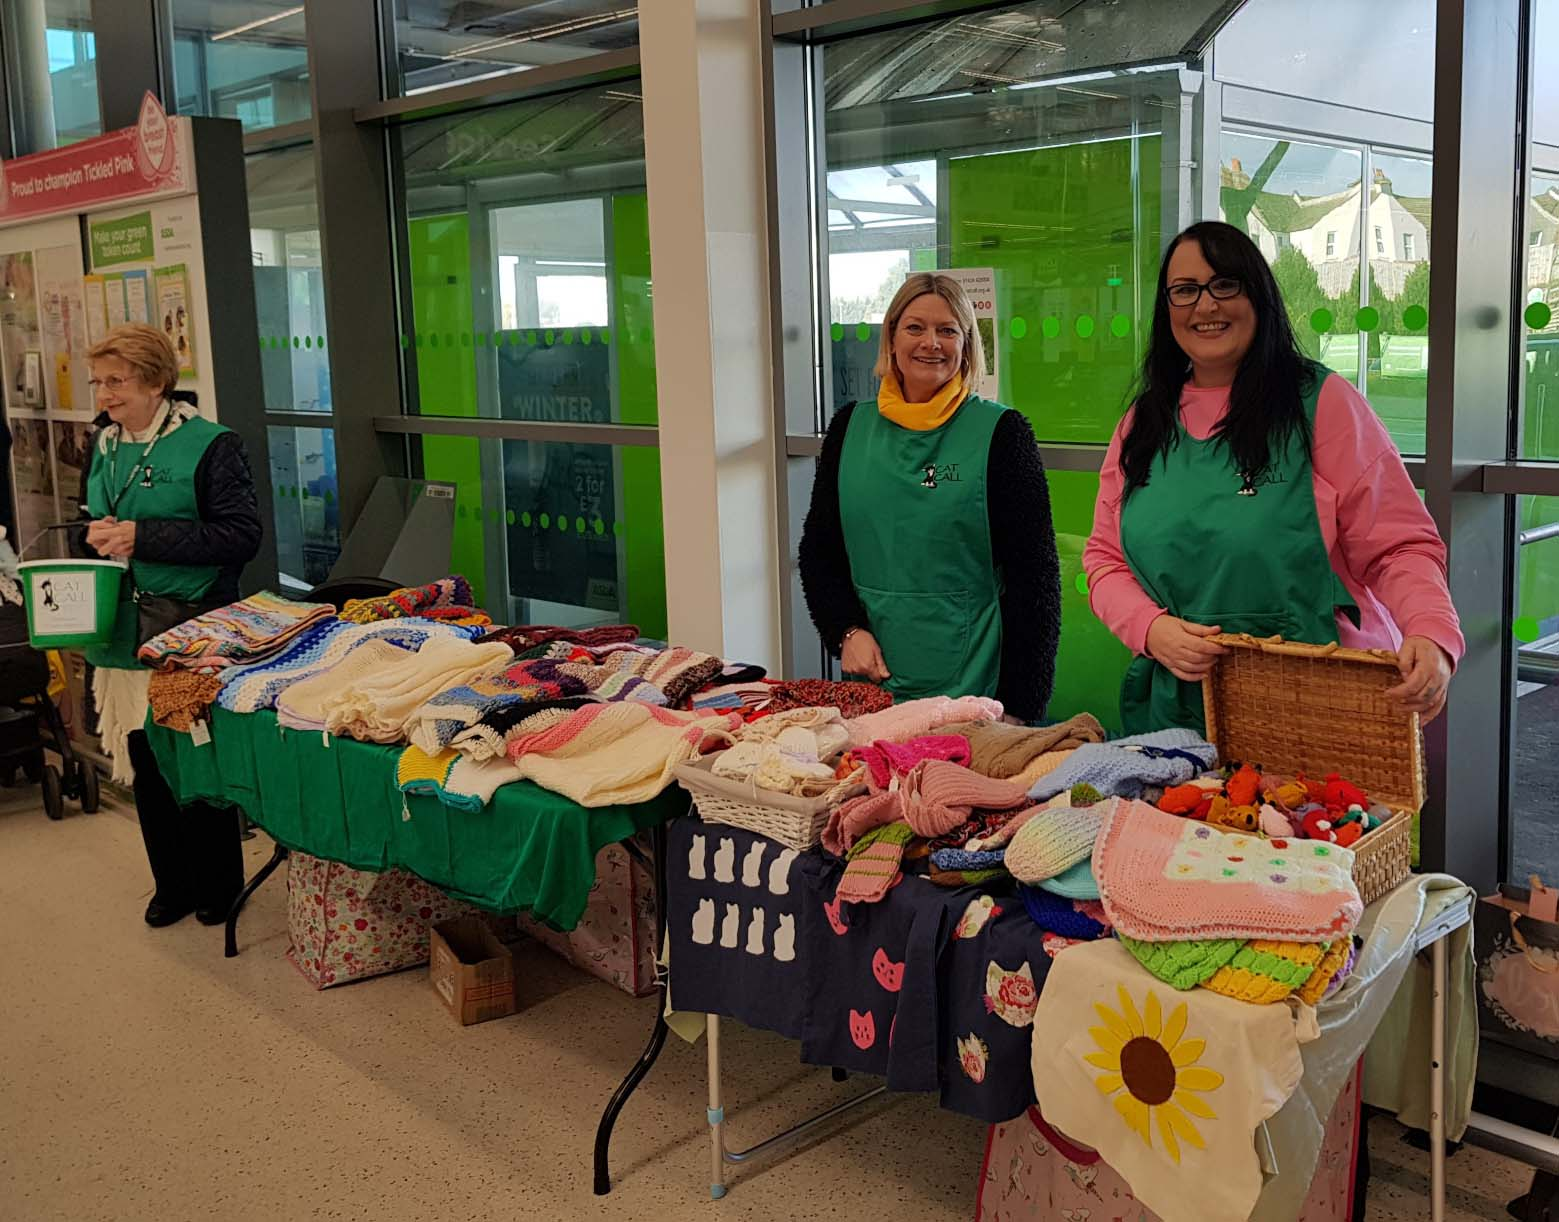 Cat Call Team at Knitted Goods Sale in Asda